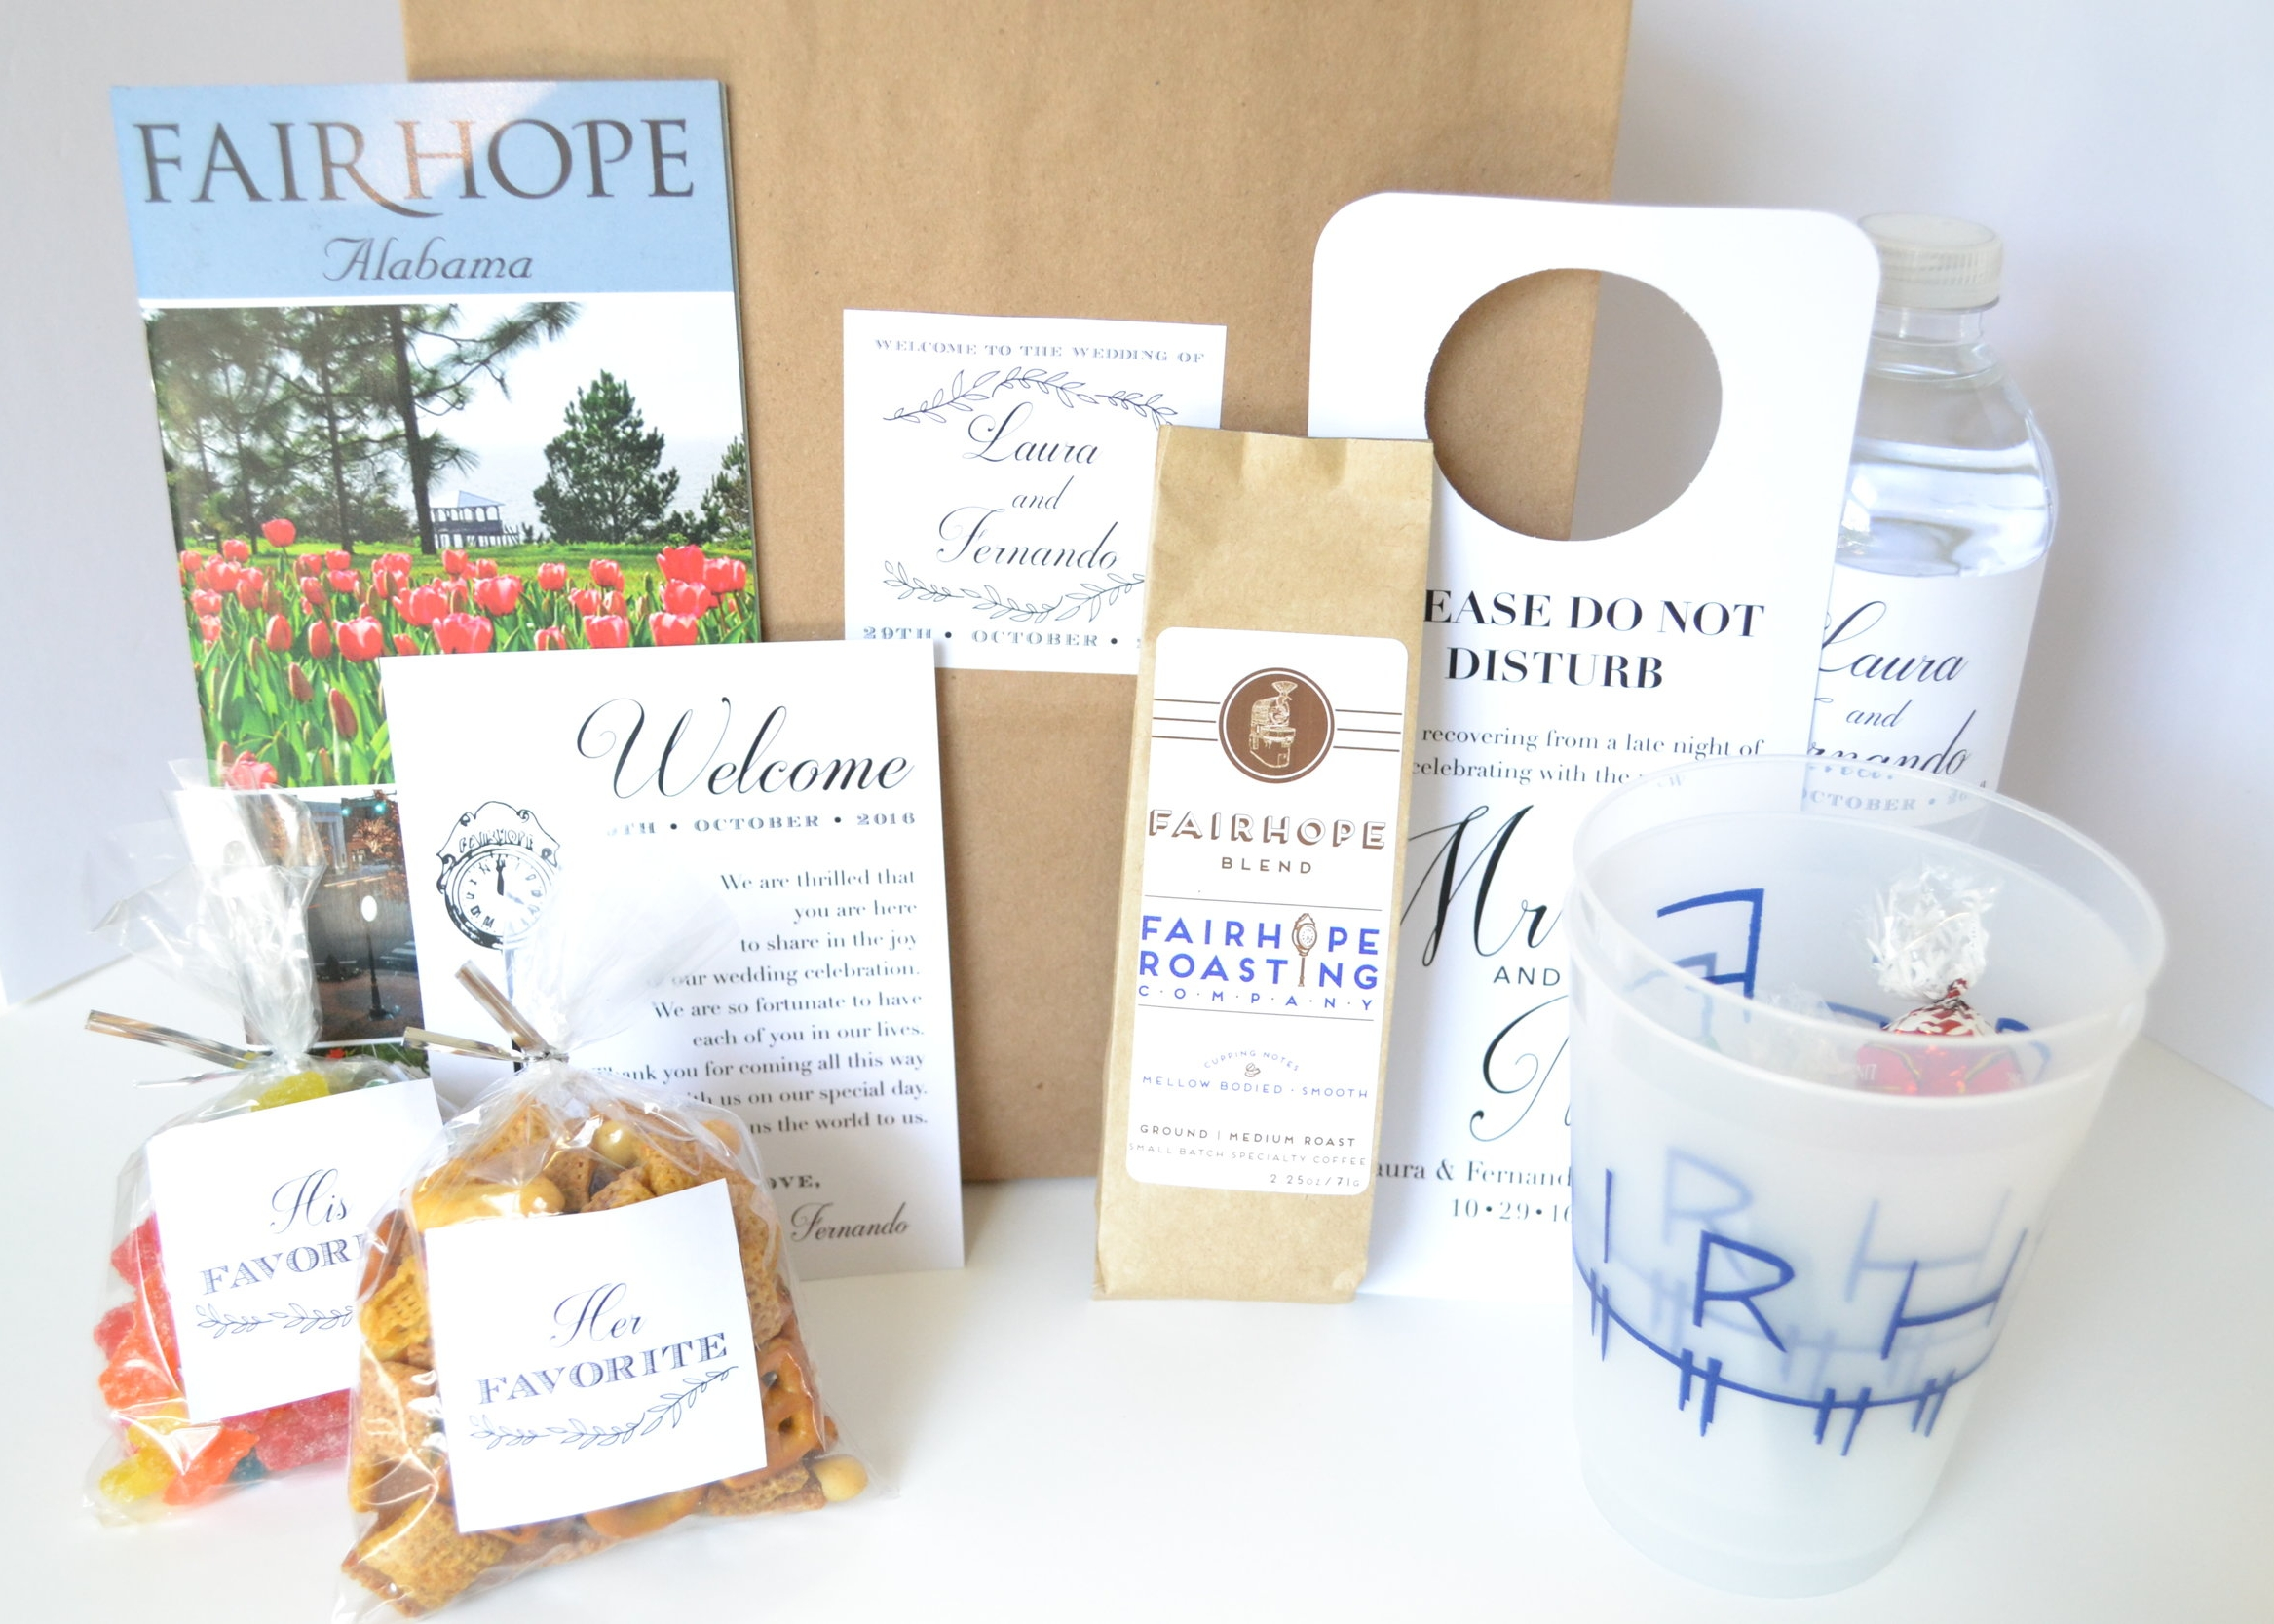 Cups- Fairhope Store; Coffee- Fairhope Roasting Co.; Fairhope Clock Design- Soiree Signatures, Labels and Sign- personal friend of Bride and Groom